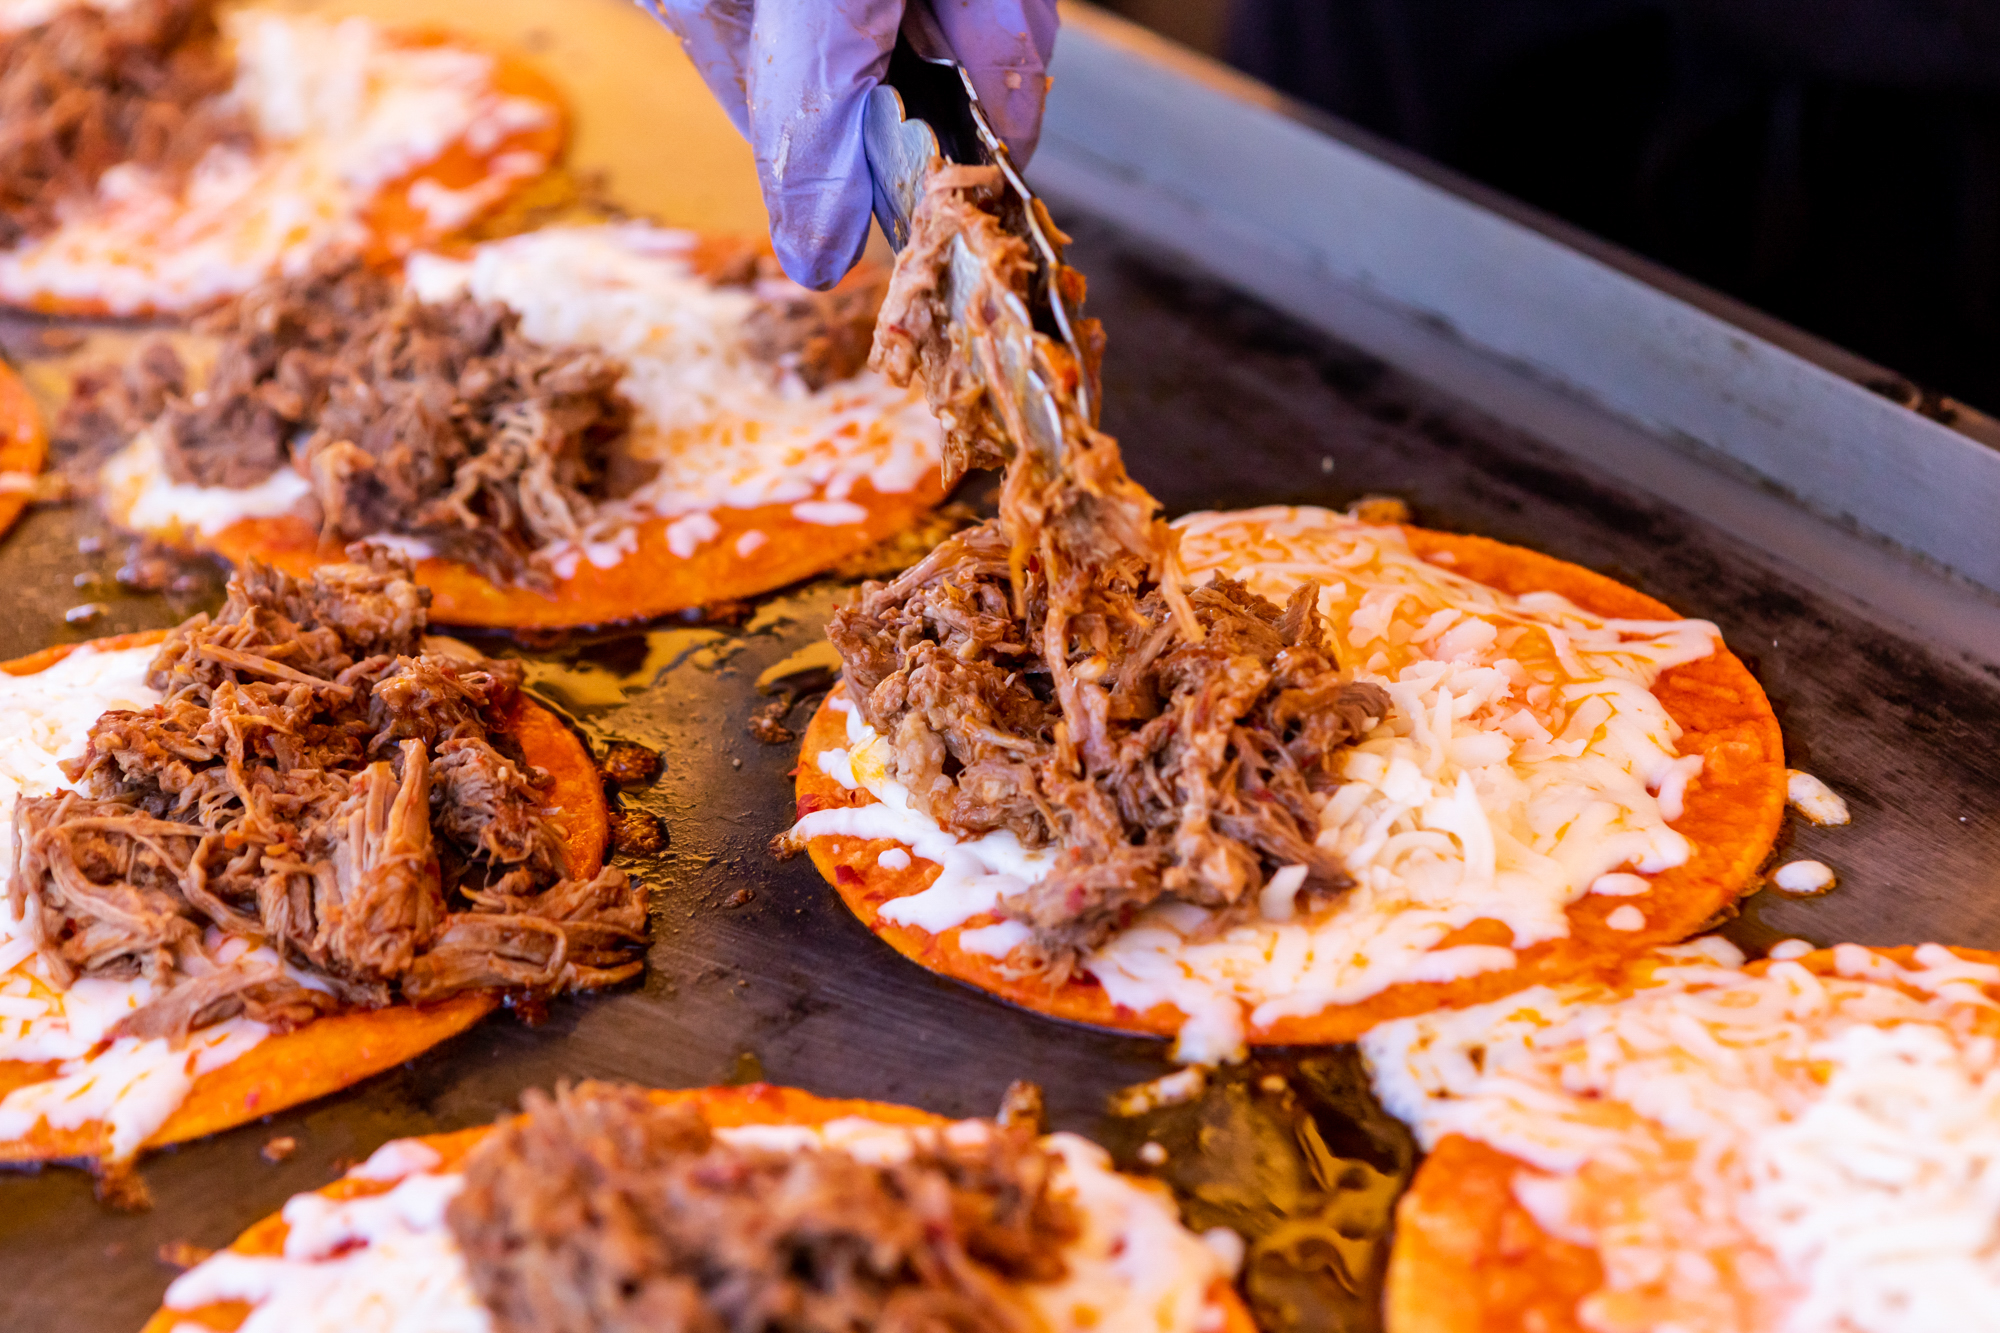 Putting birria on top of the tacos